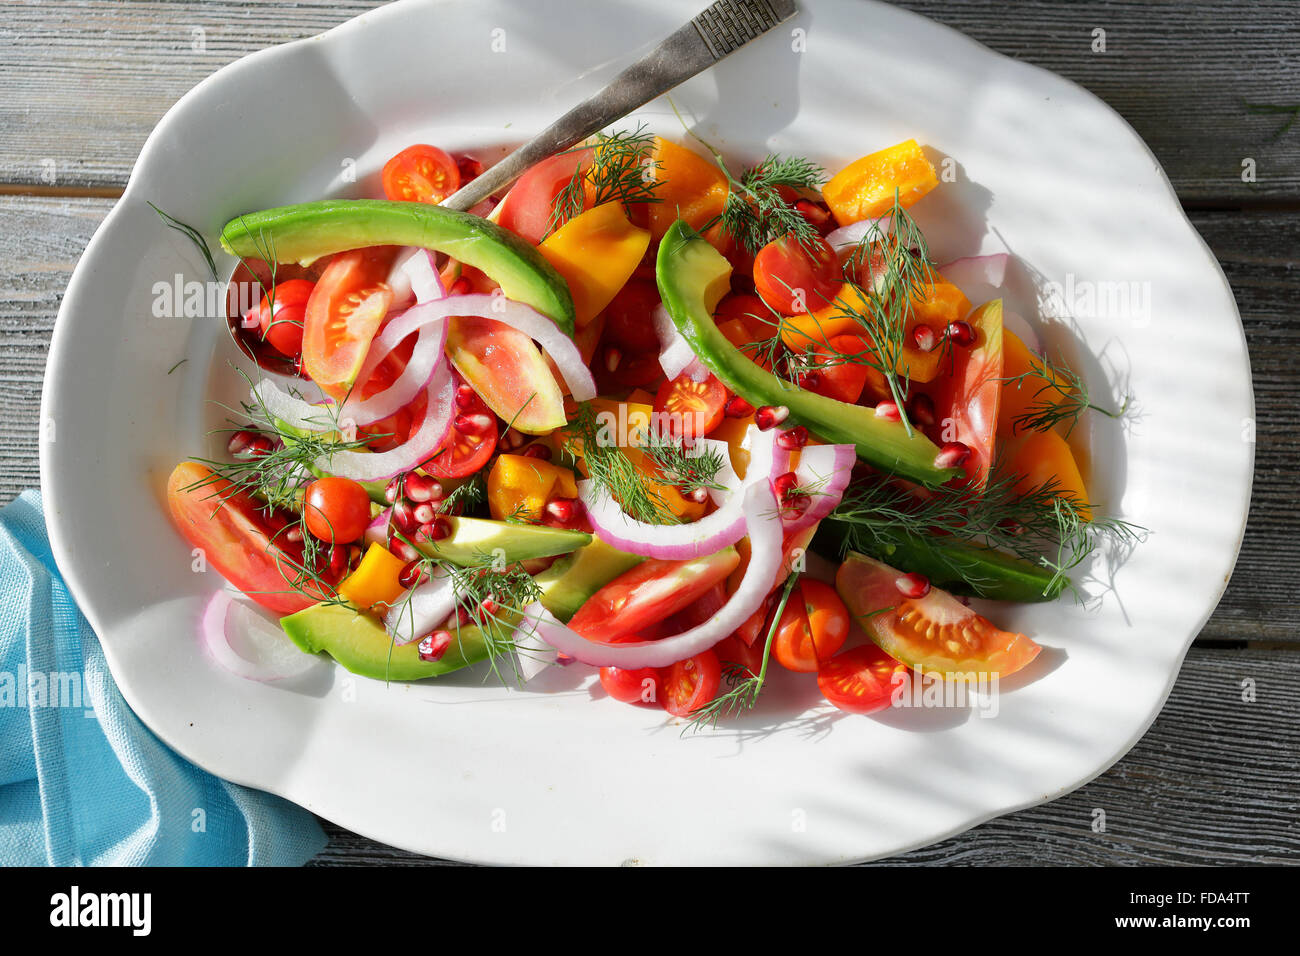 tomato and paprika salad on plate - Stock Image